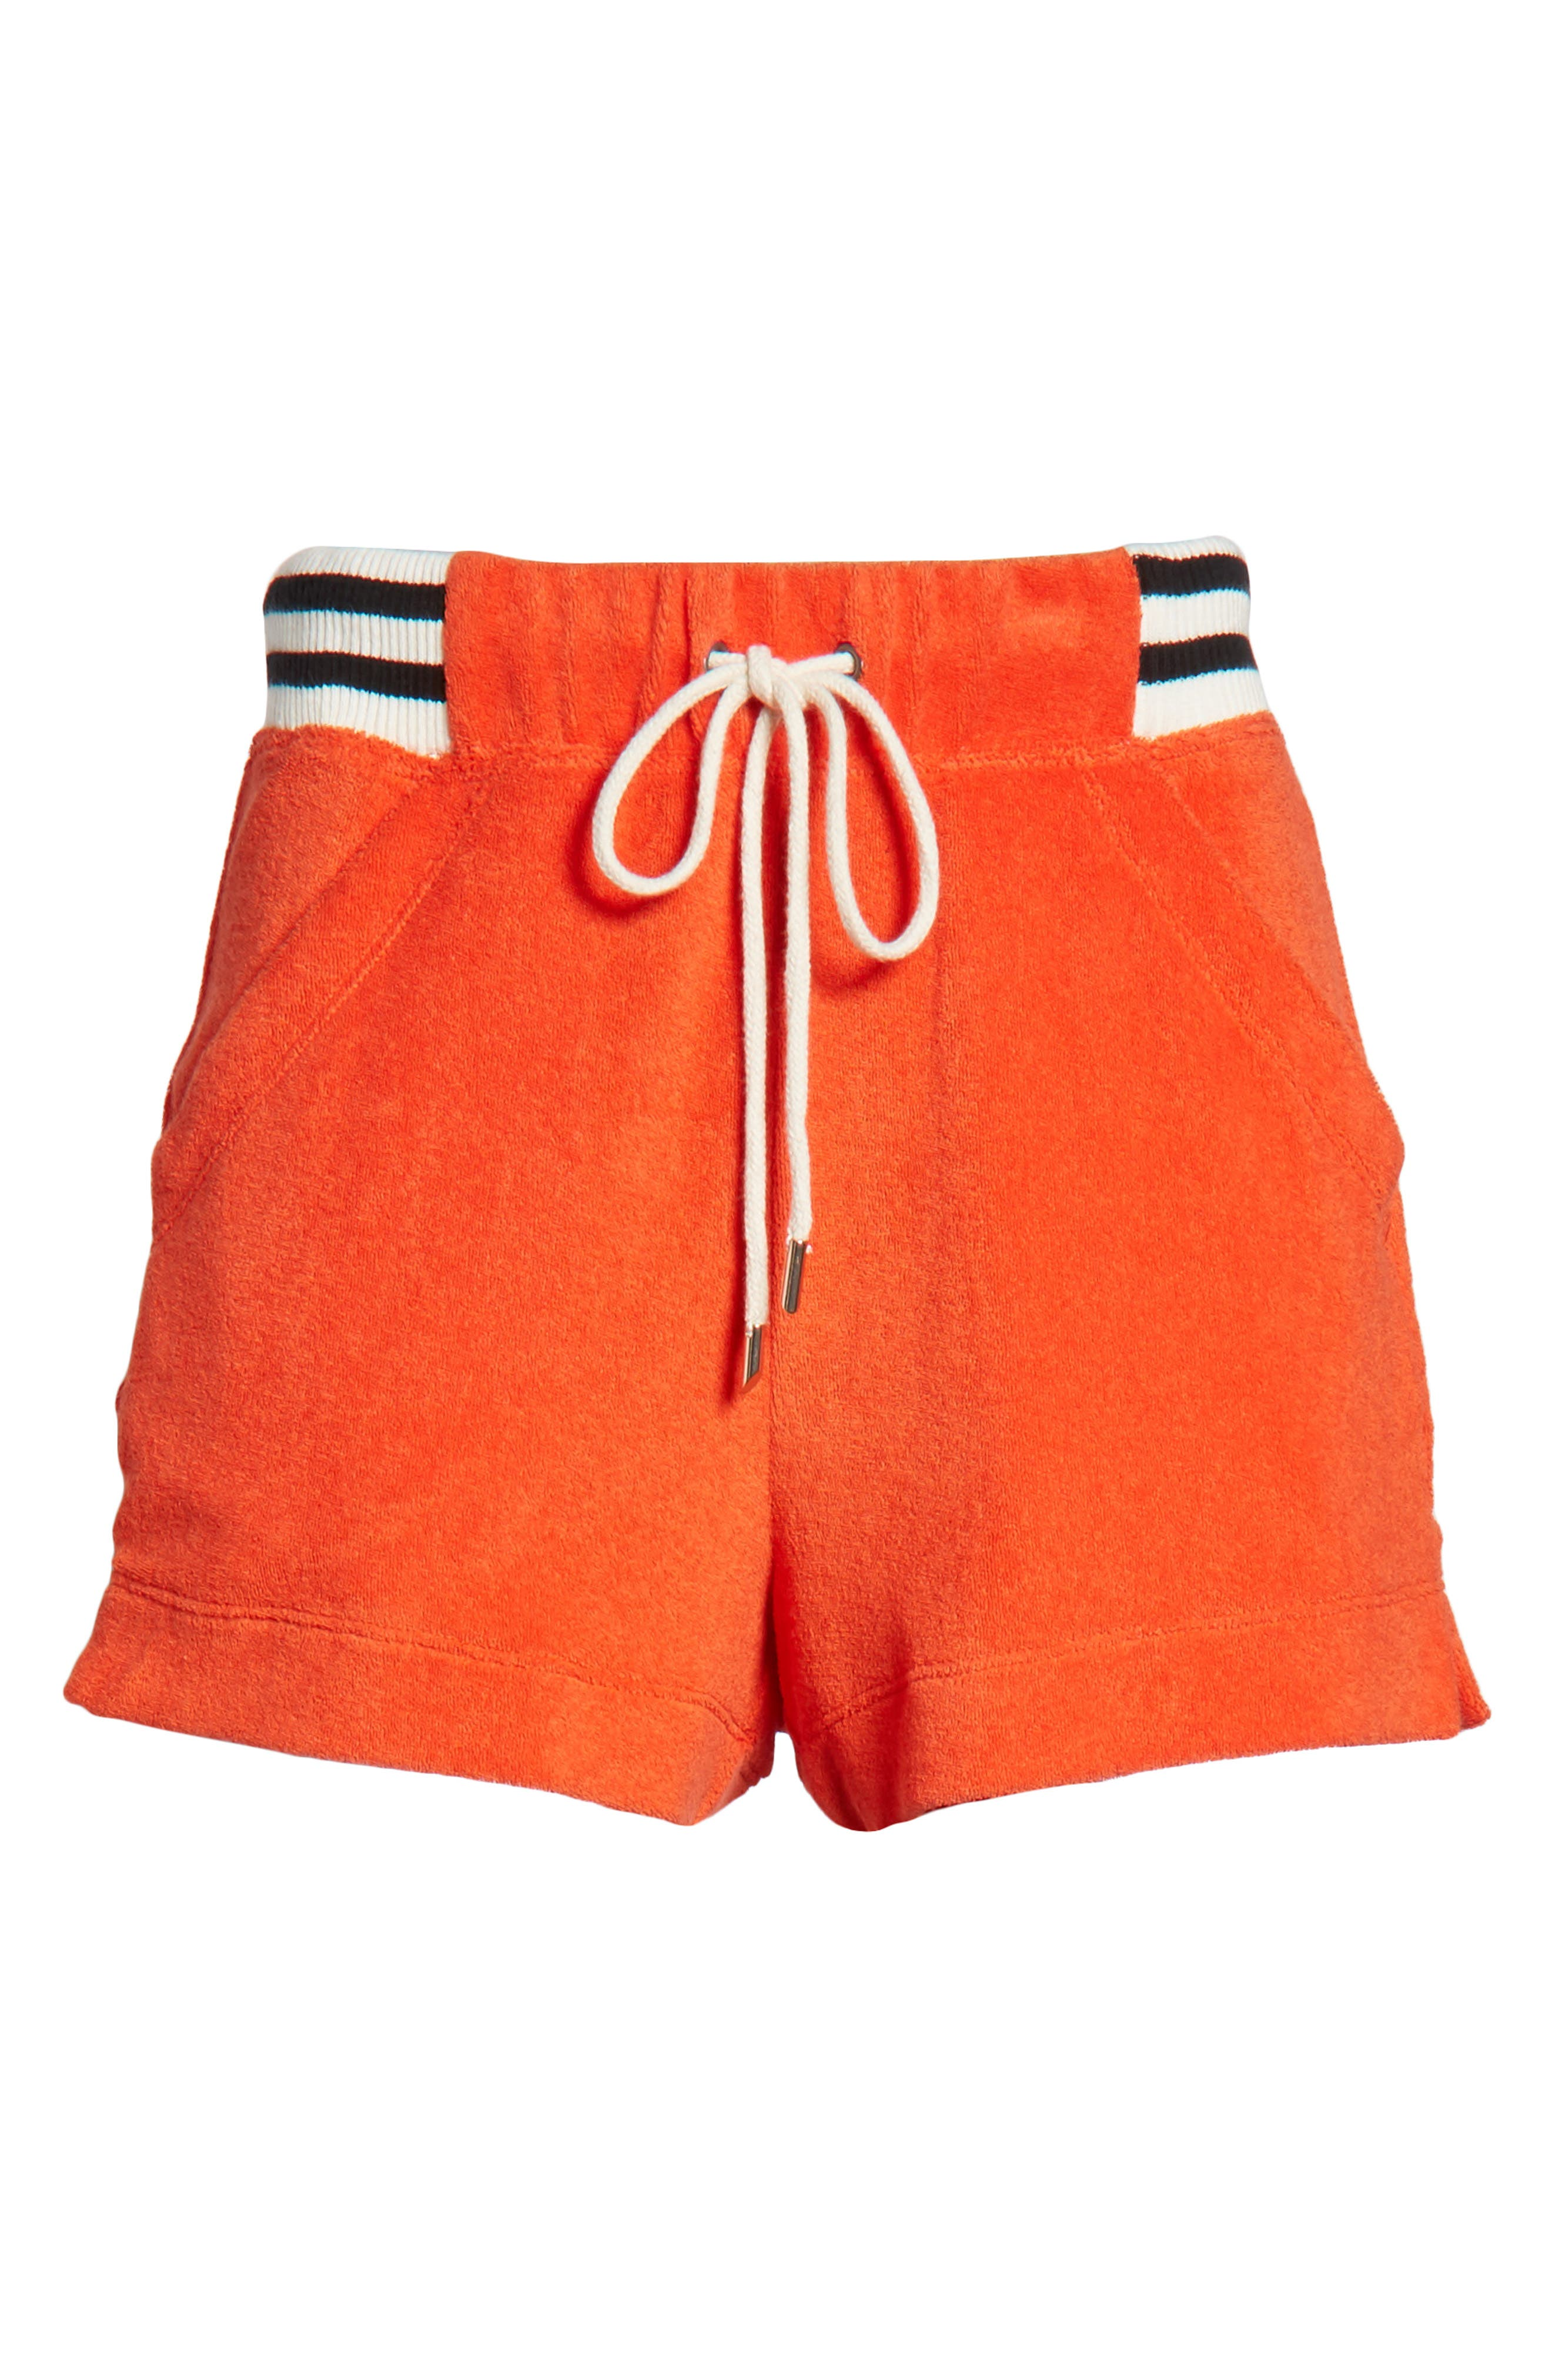 x Margherita Sportivo French Terry Shorts,                             Alternate thumbnail 6, color,